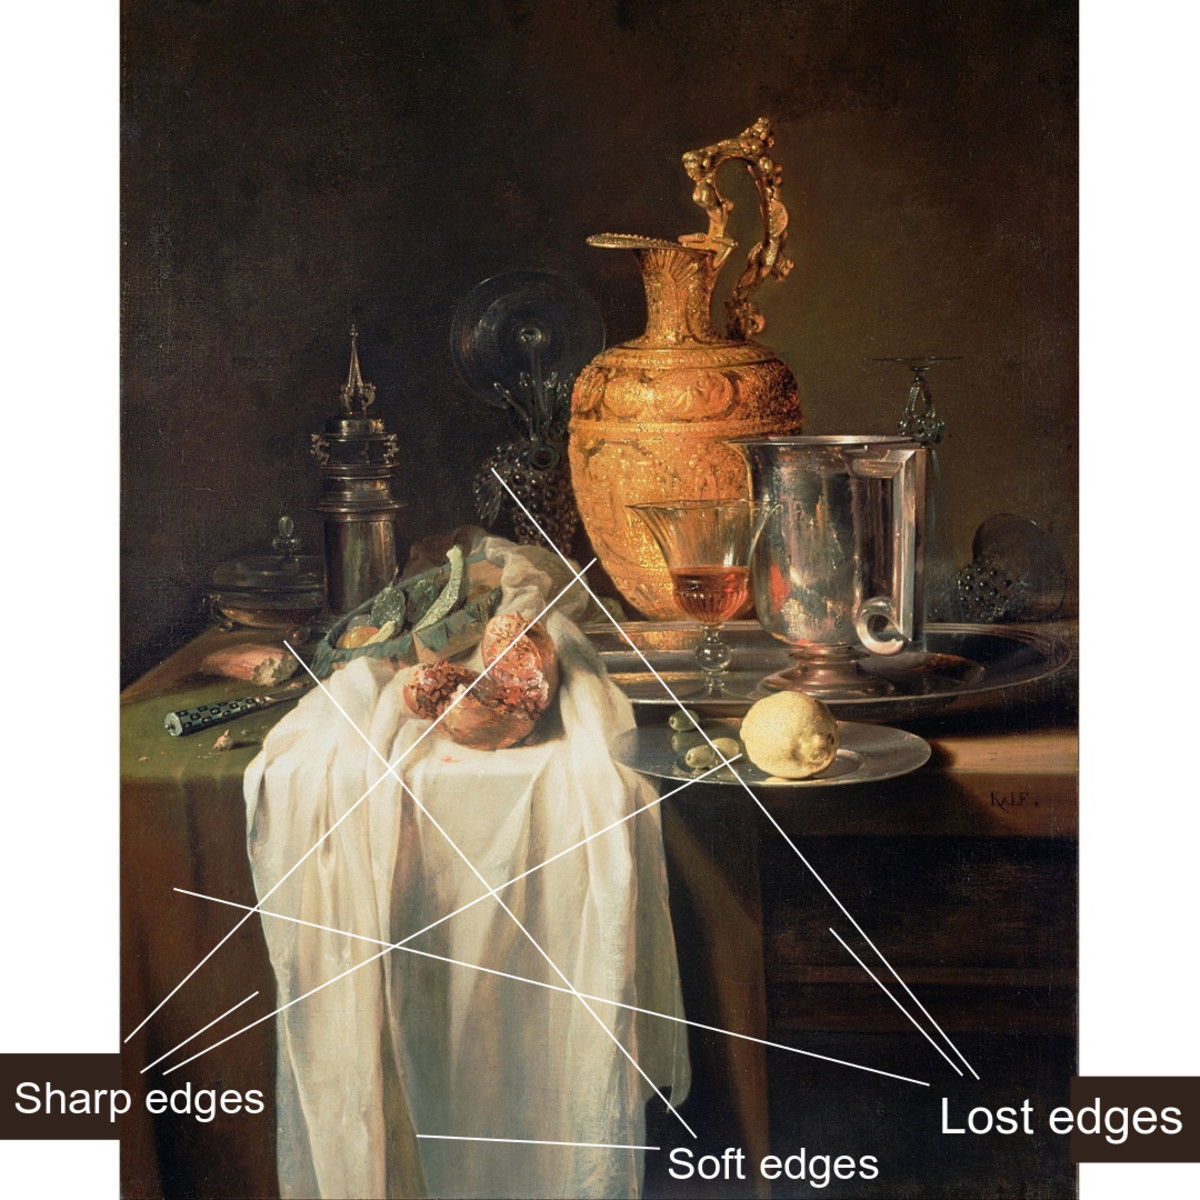 Edge analysis on Still Life with Ewer, Vessels and Pomegranate by Willem Kalf.